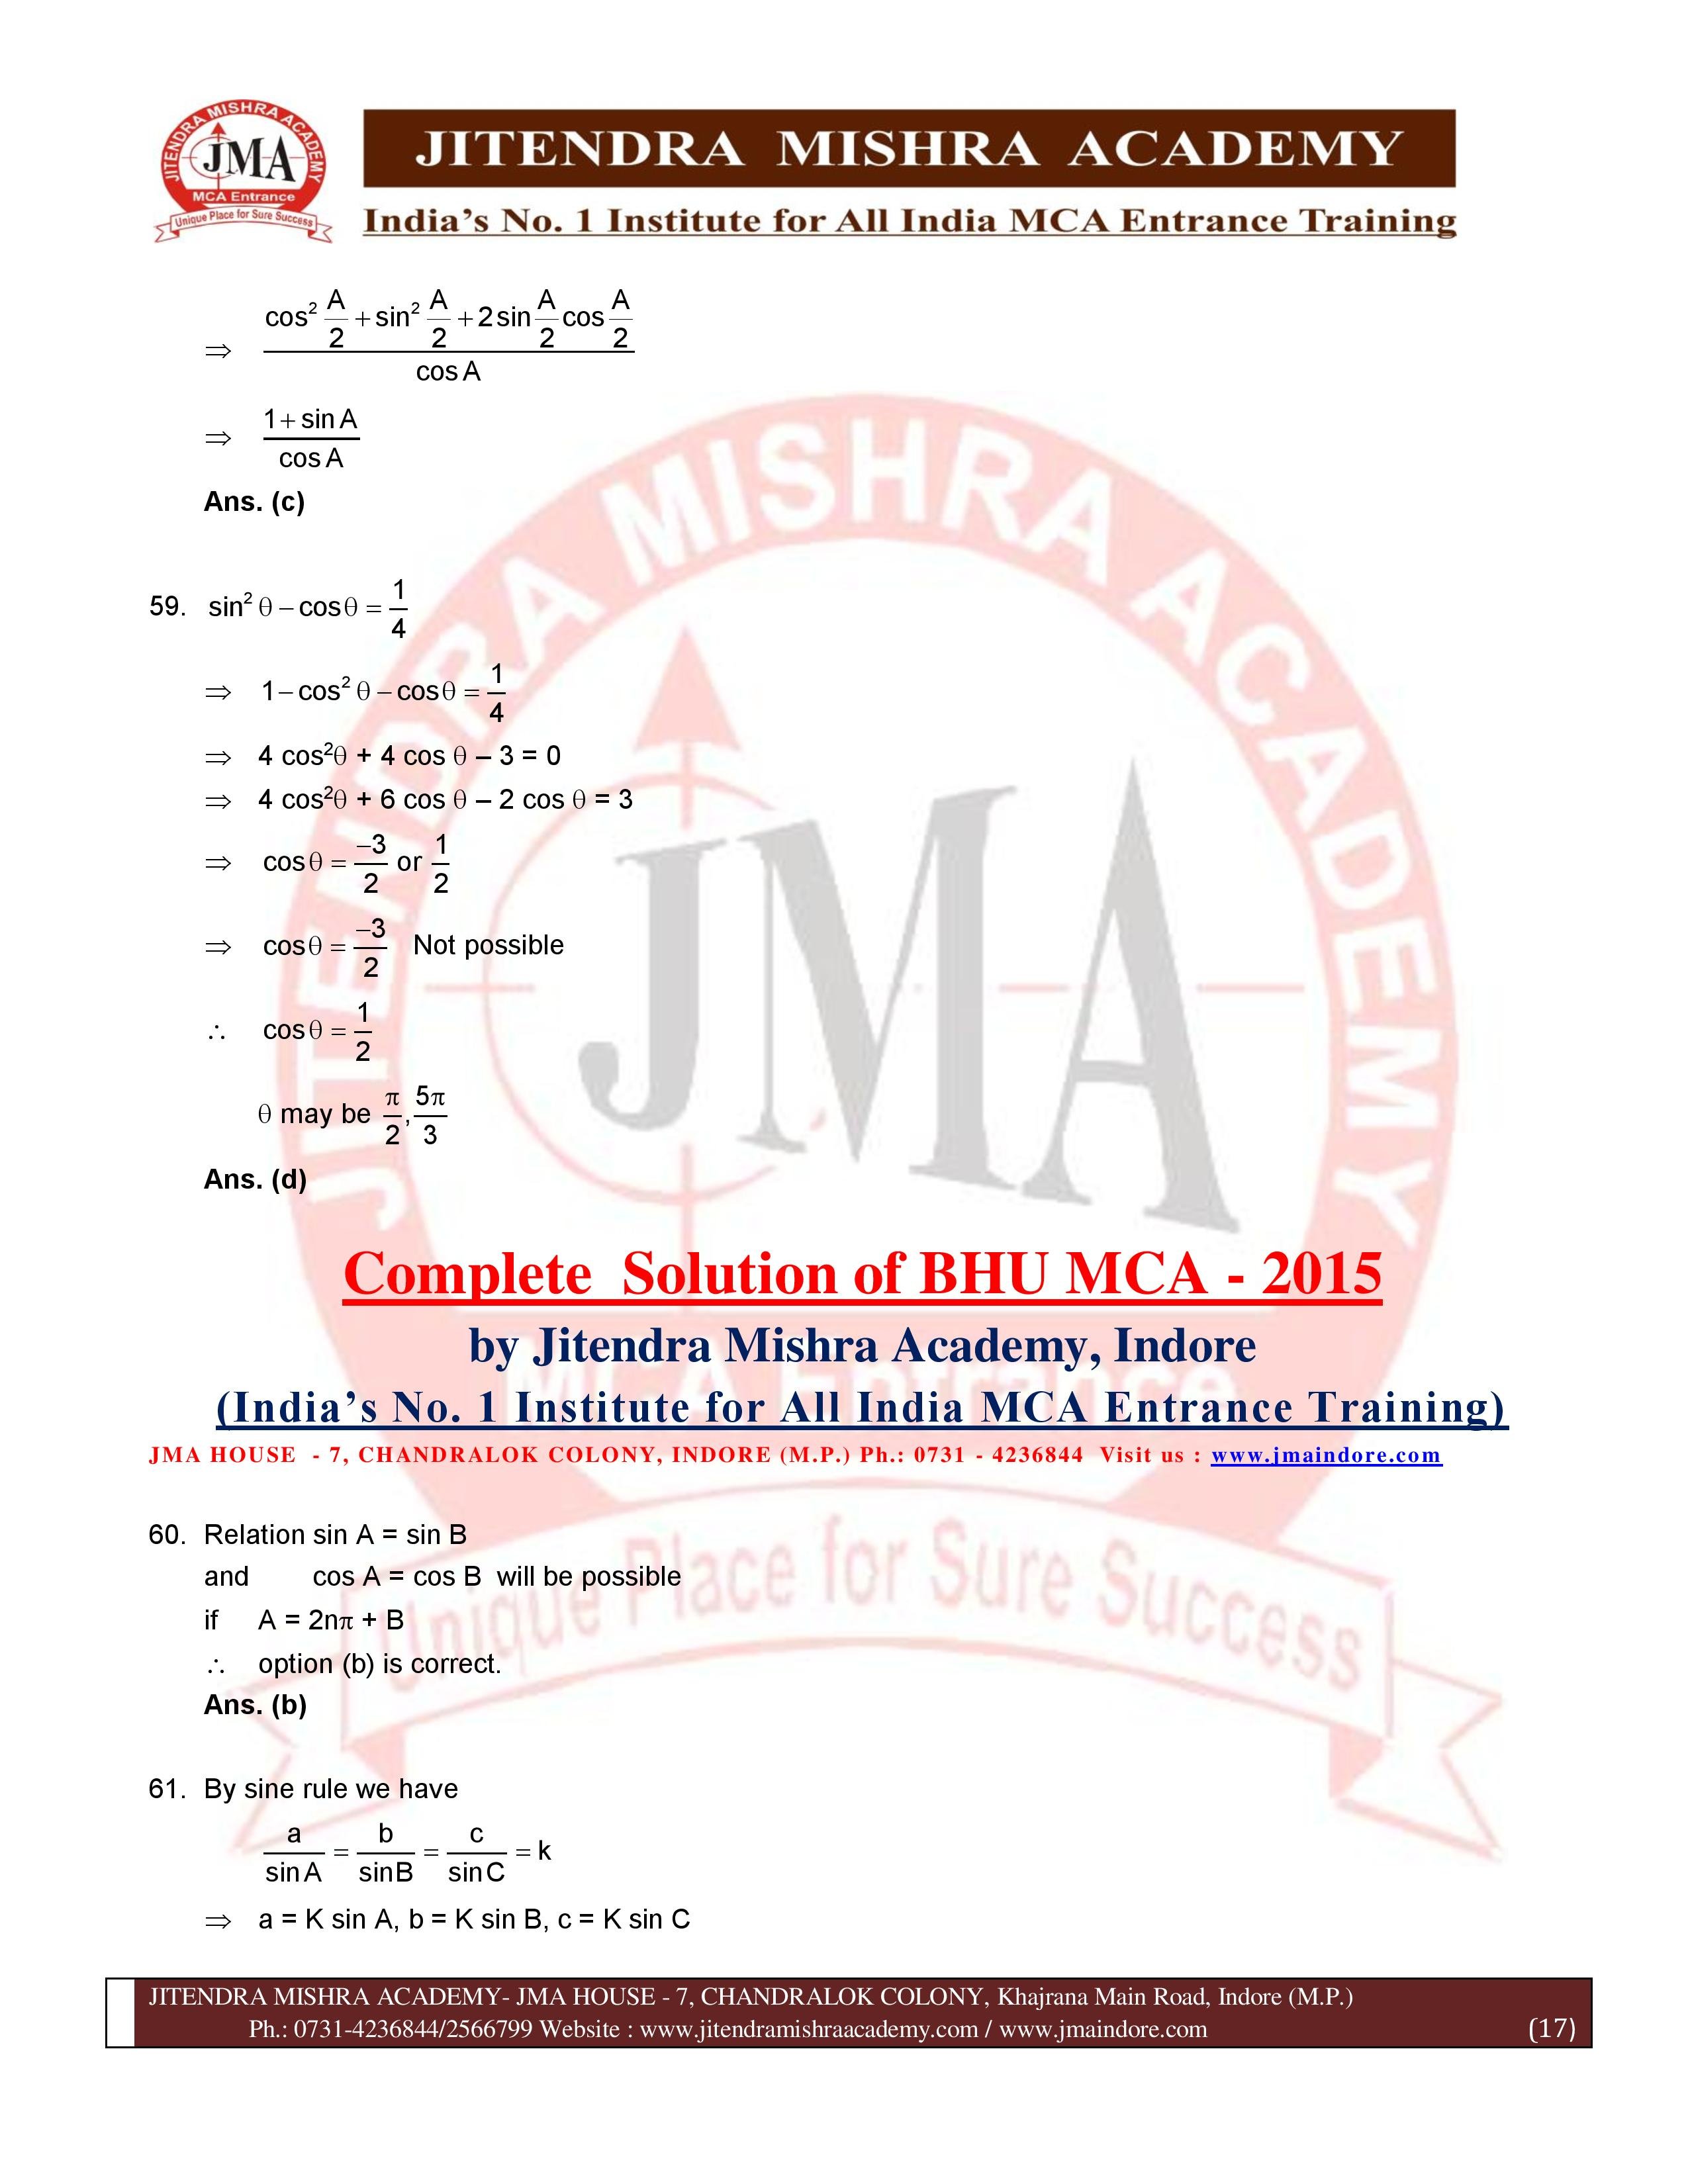 BHU 2015 SOLUTION (SET - 1) (29.06.16)-page-017